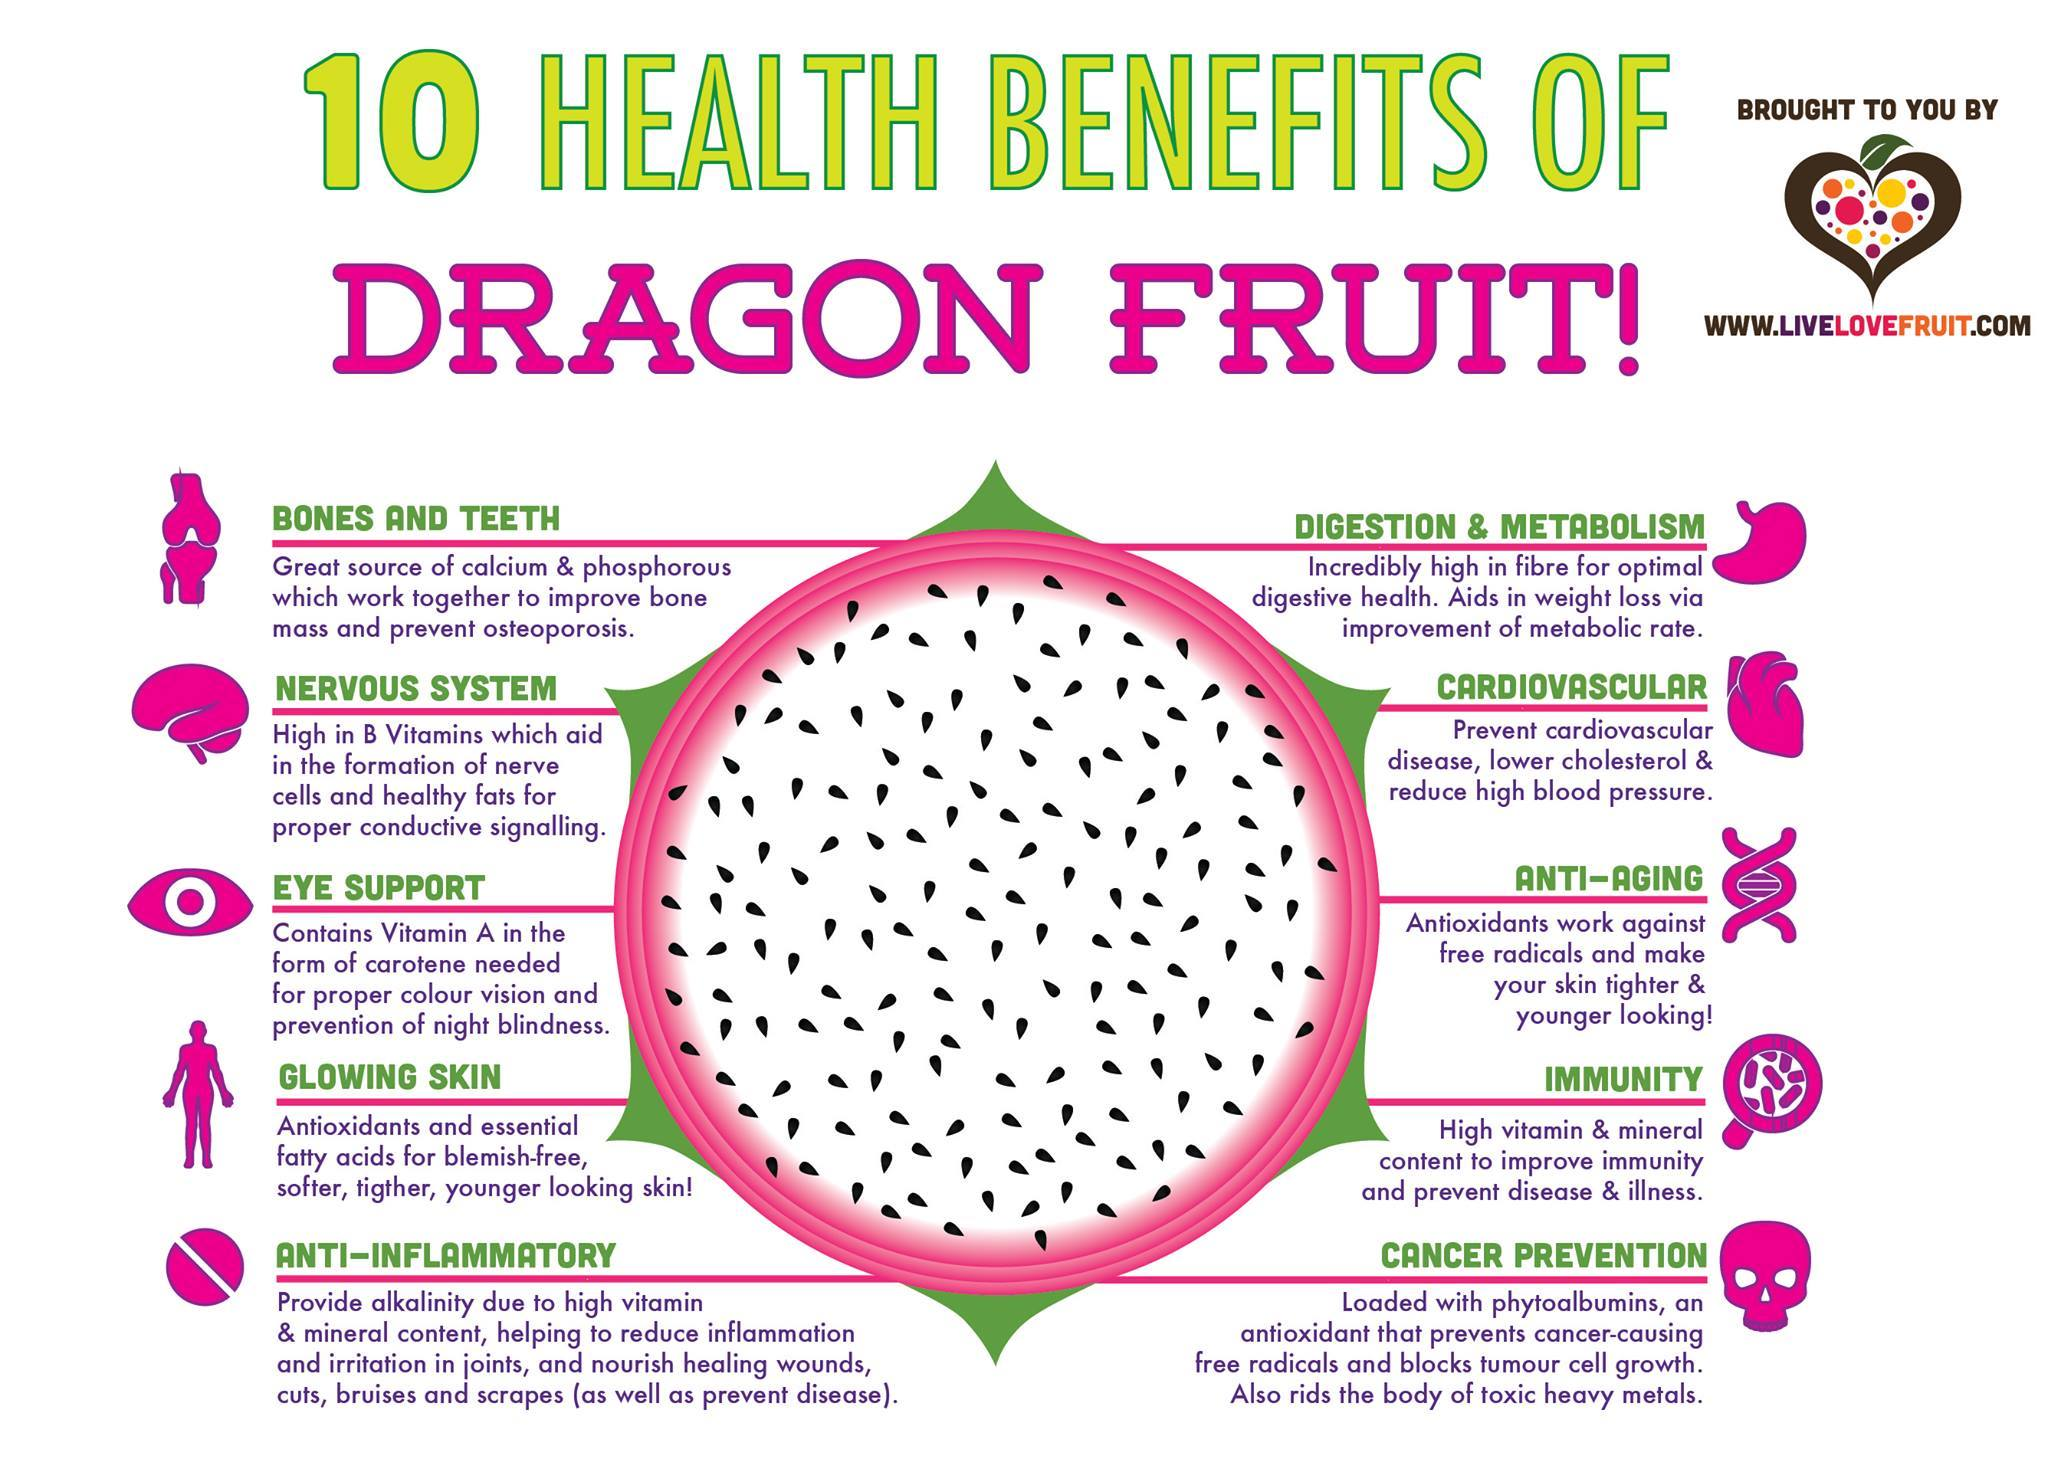 patterson fruit farm dragon fruit healthy